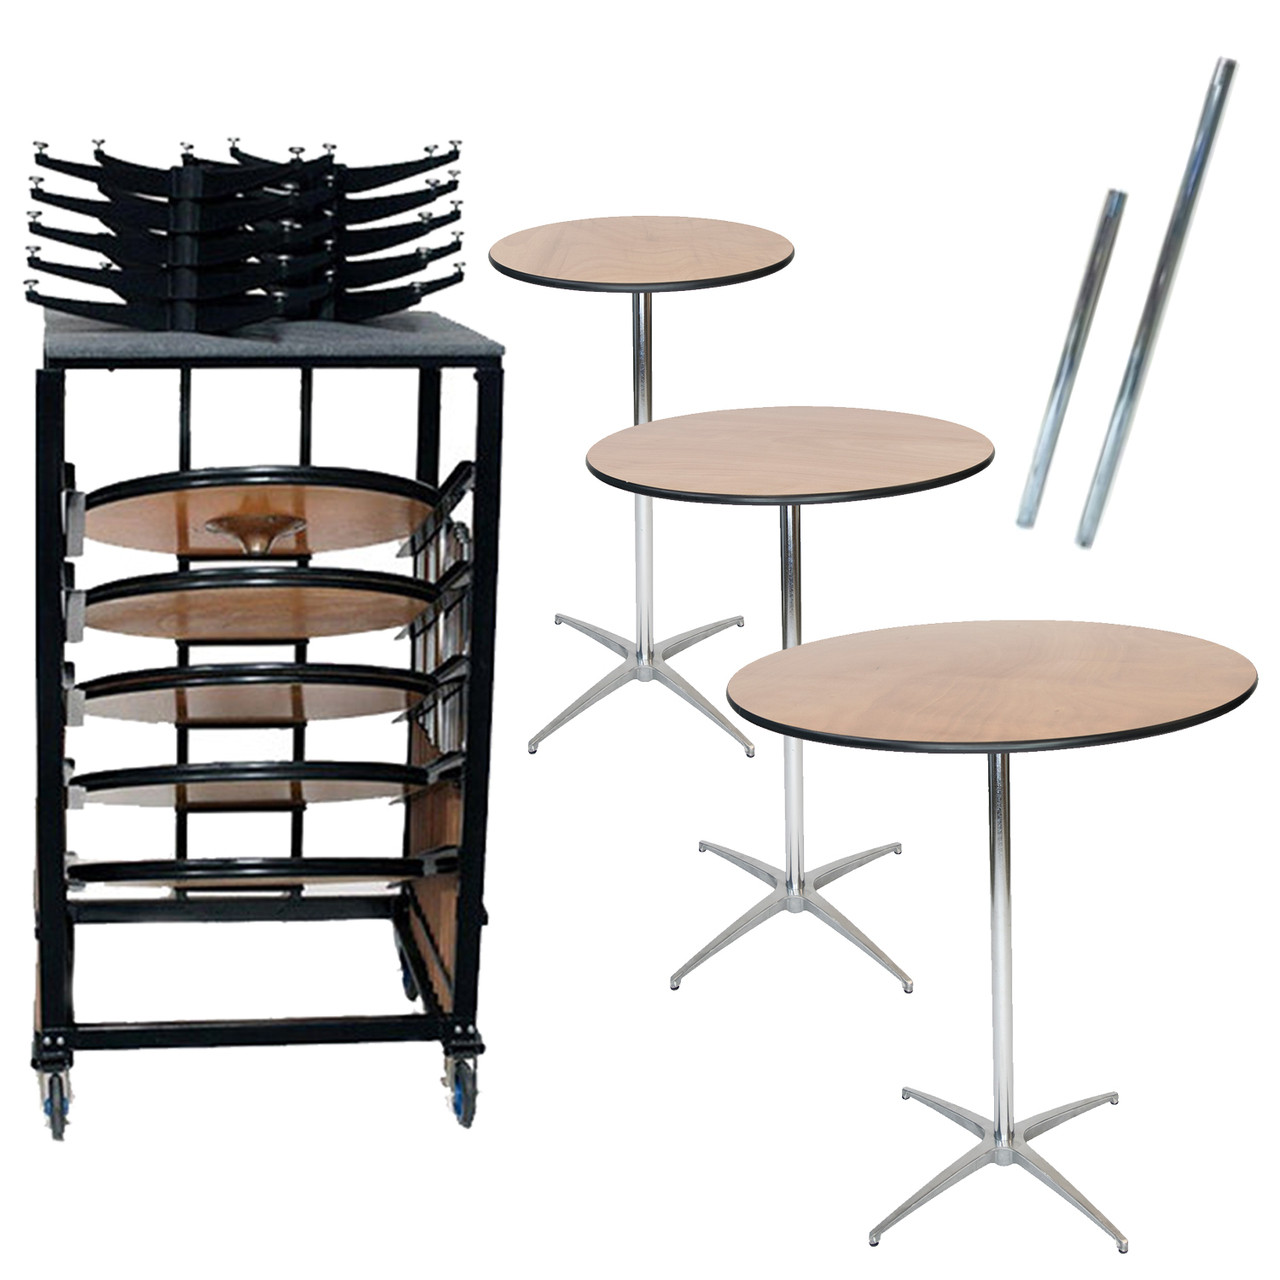 Picture of: 10 Classic Series Round Wood Cocktail Table Bundle 10 Tables 30 42 Height Poles And Transport Cart Foldingchairsandtables Com